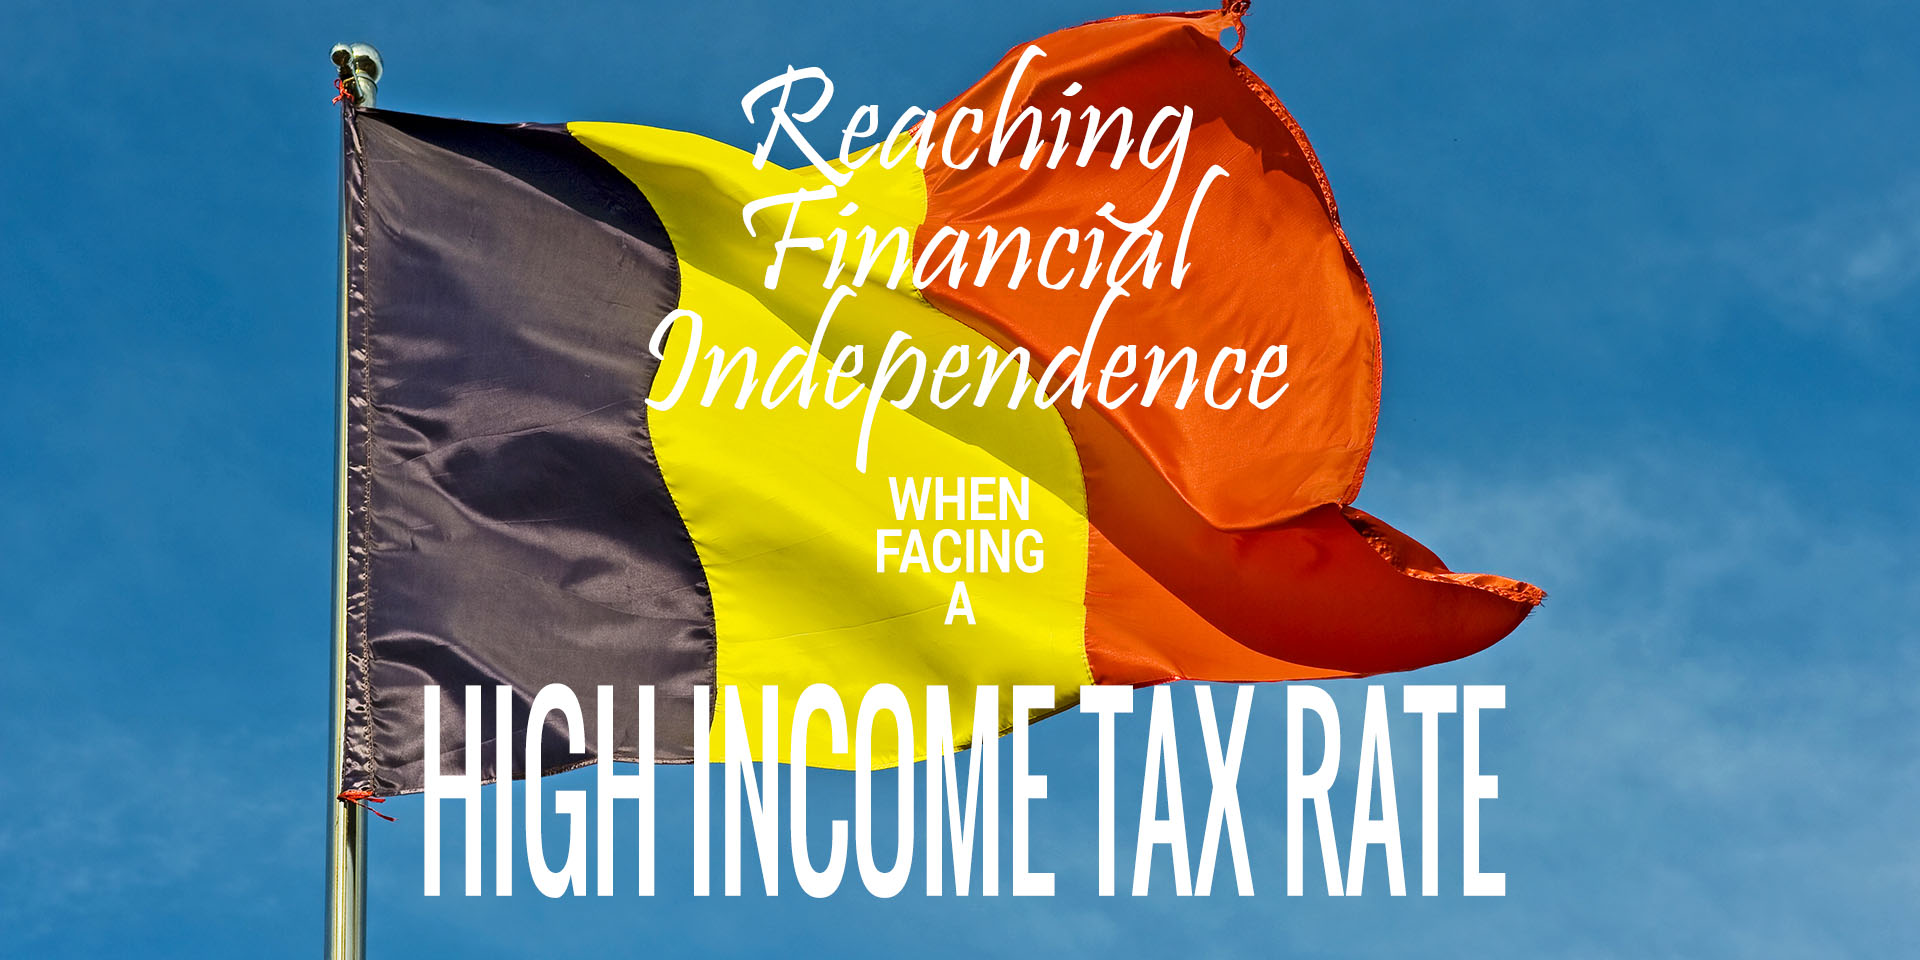 Reaching Financial Independence When Facing the Highest Income Tax Rate in the Western World